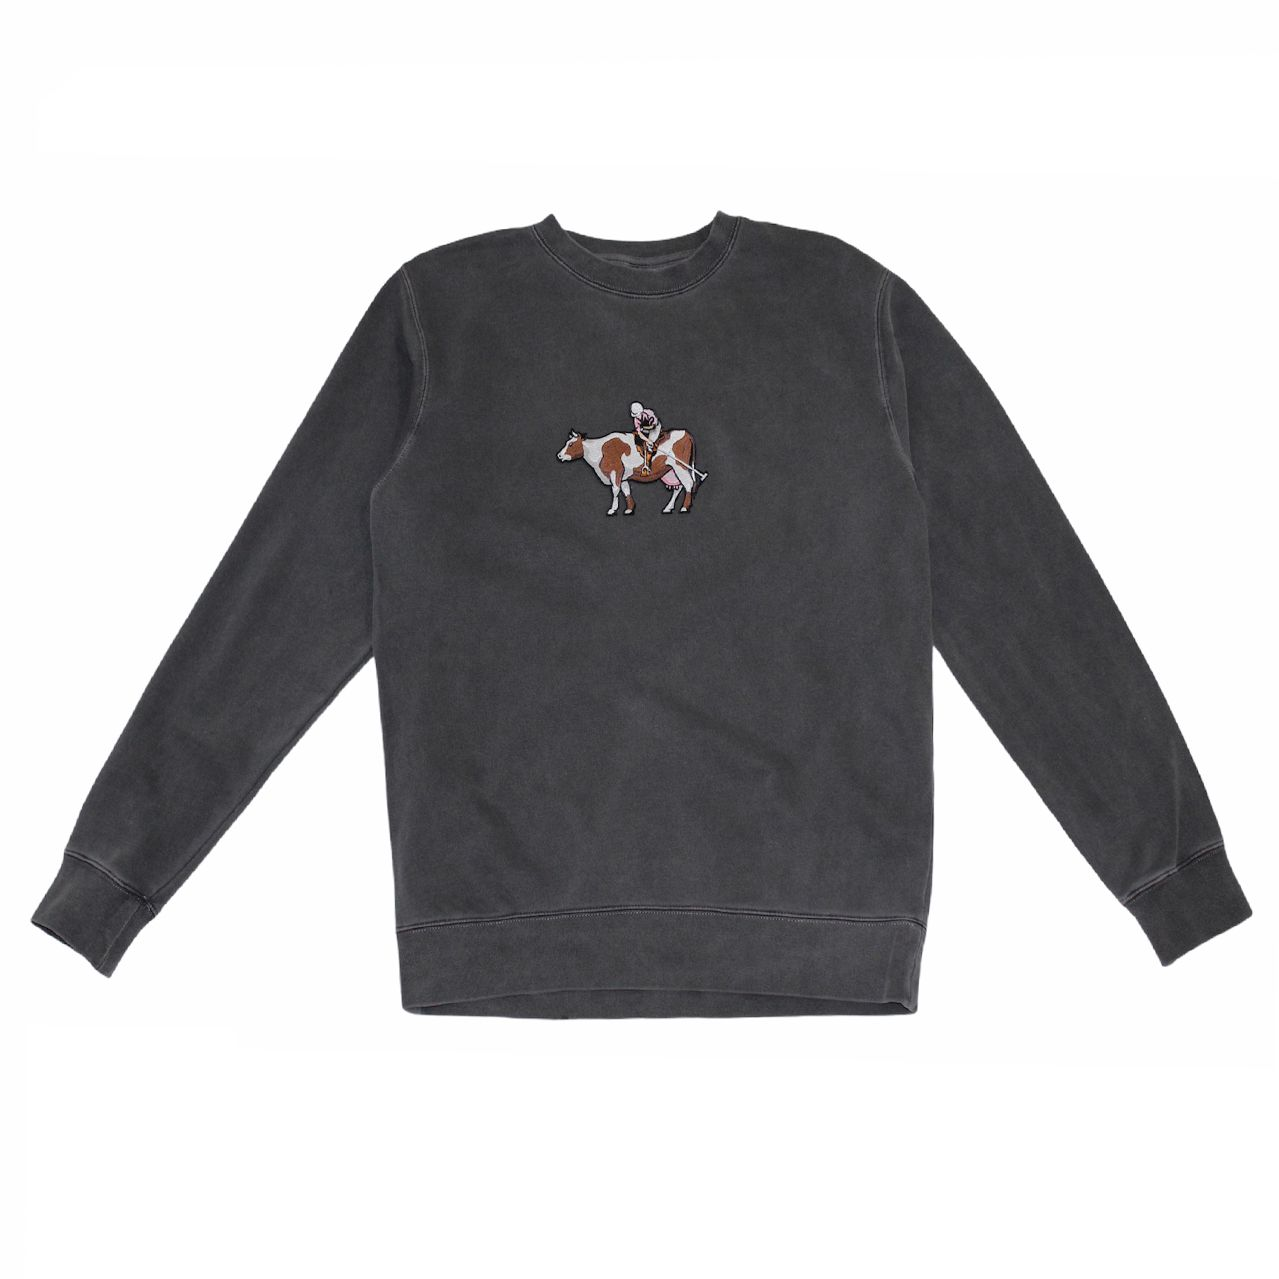 SoYou Clothing Country Club Crewneck in Black